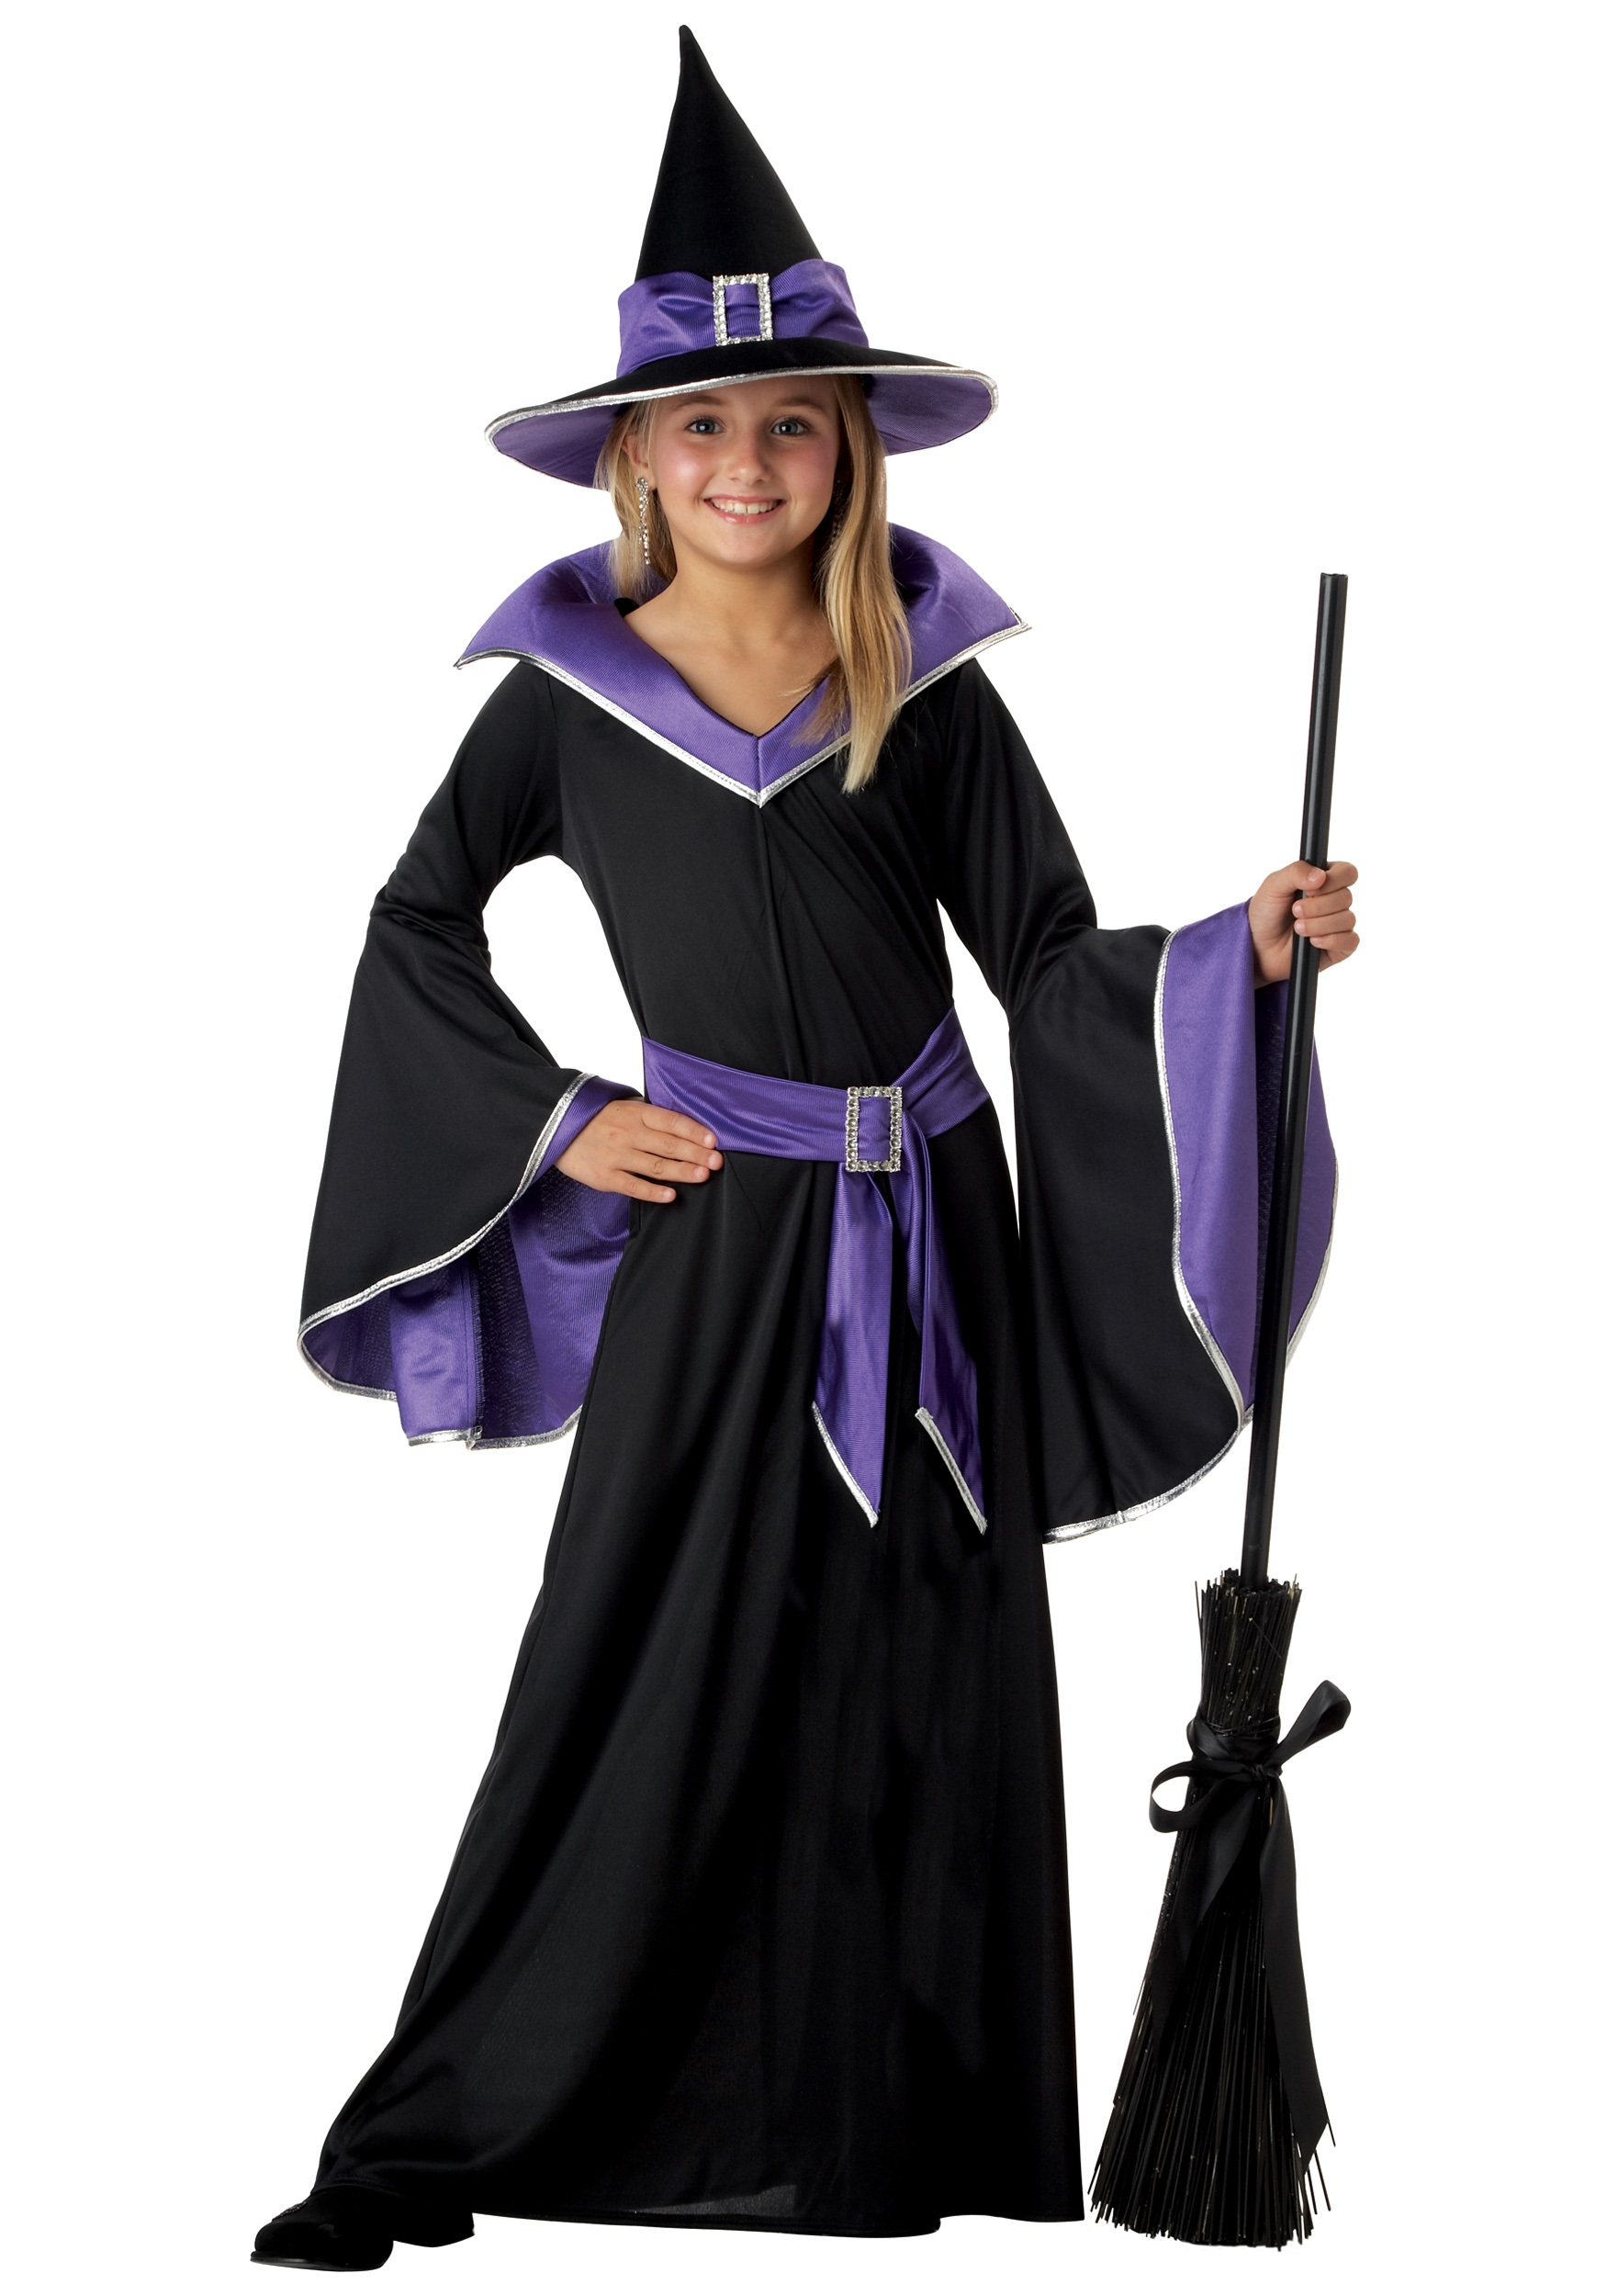 Child Glamour Witch Costume  sc 1 st  Halloween Costumes & Child Glamour Witch Costume - Kids Witch Halloween Costumes